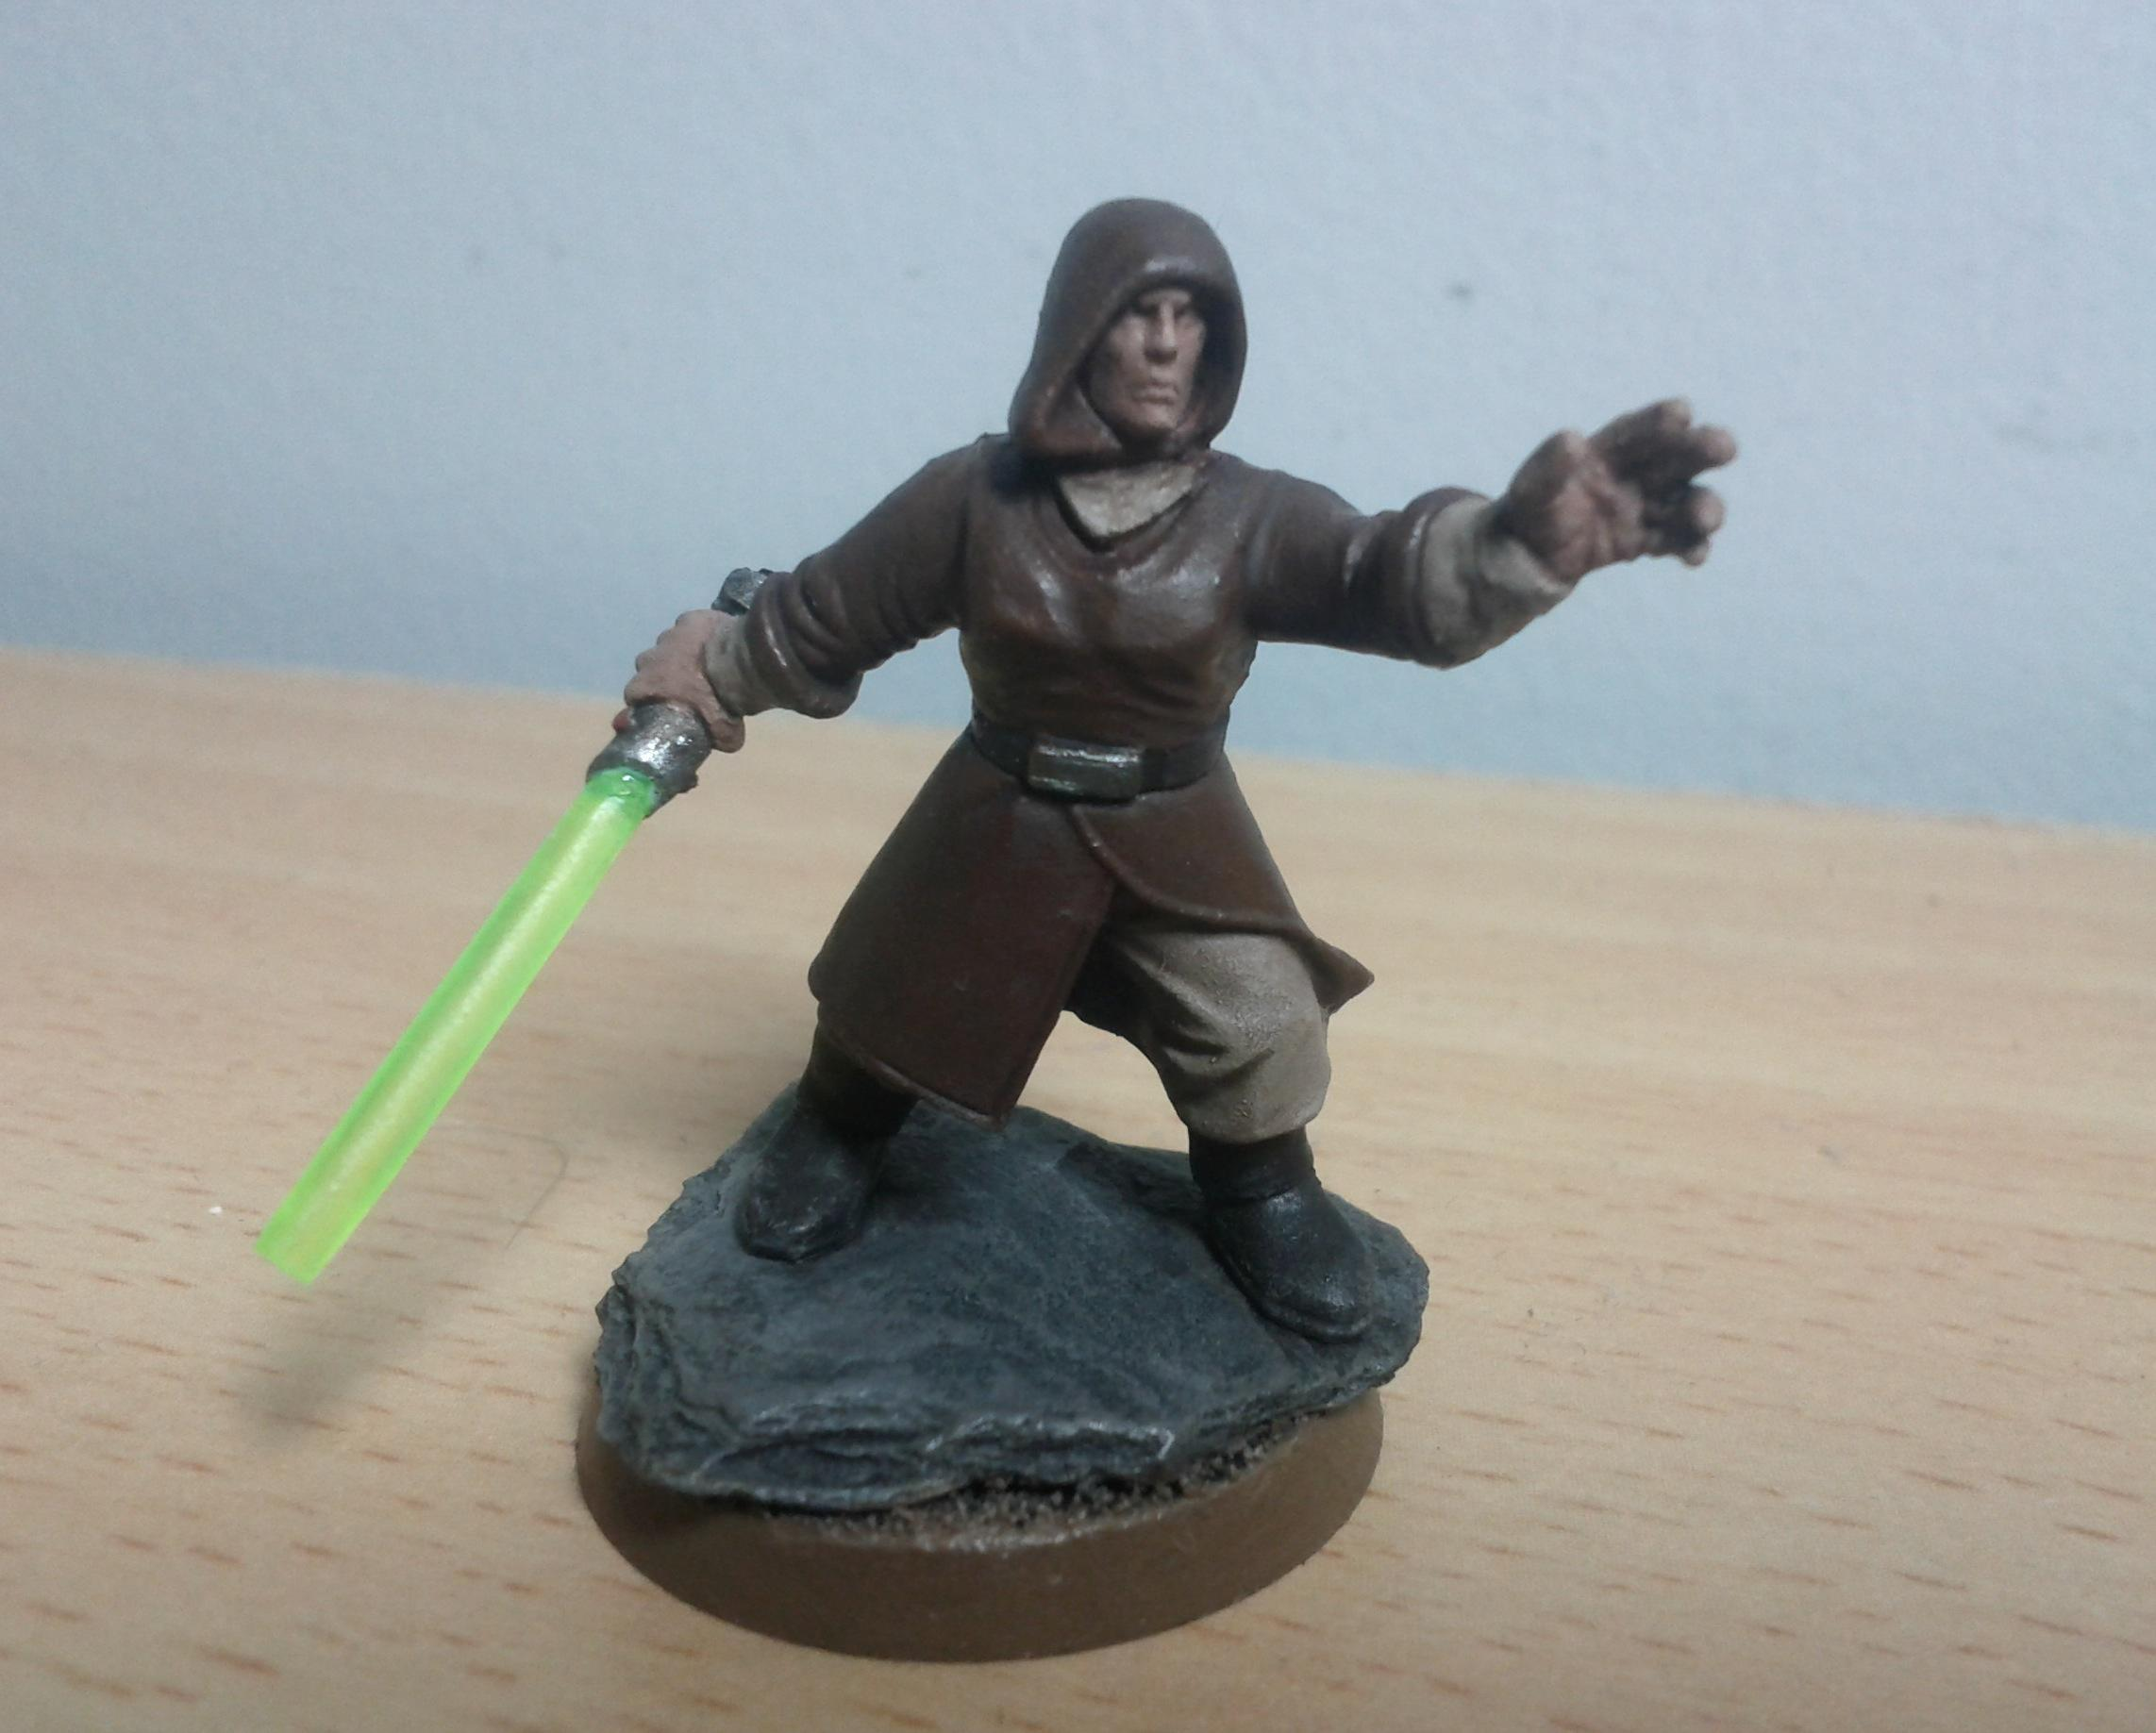 Conversion, Force, Jedi, Kitbash, Knights, Lightsaber, Star, Starwars, Wars